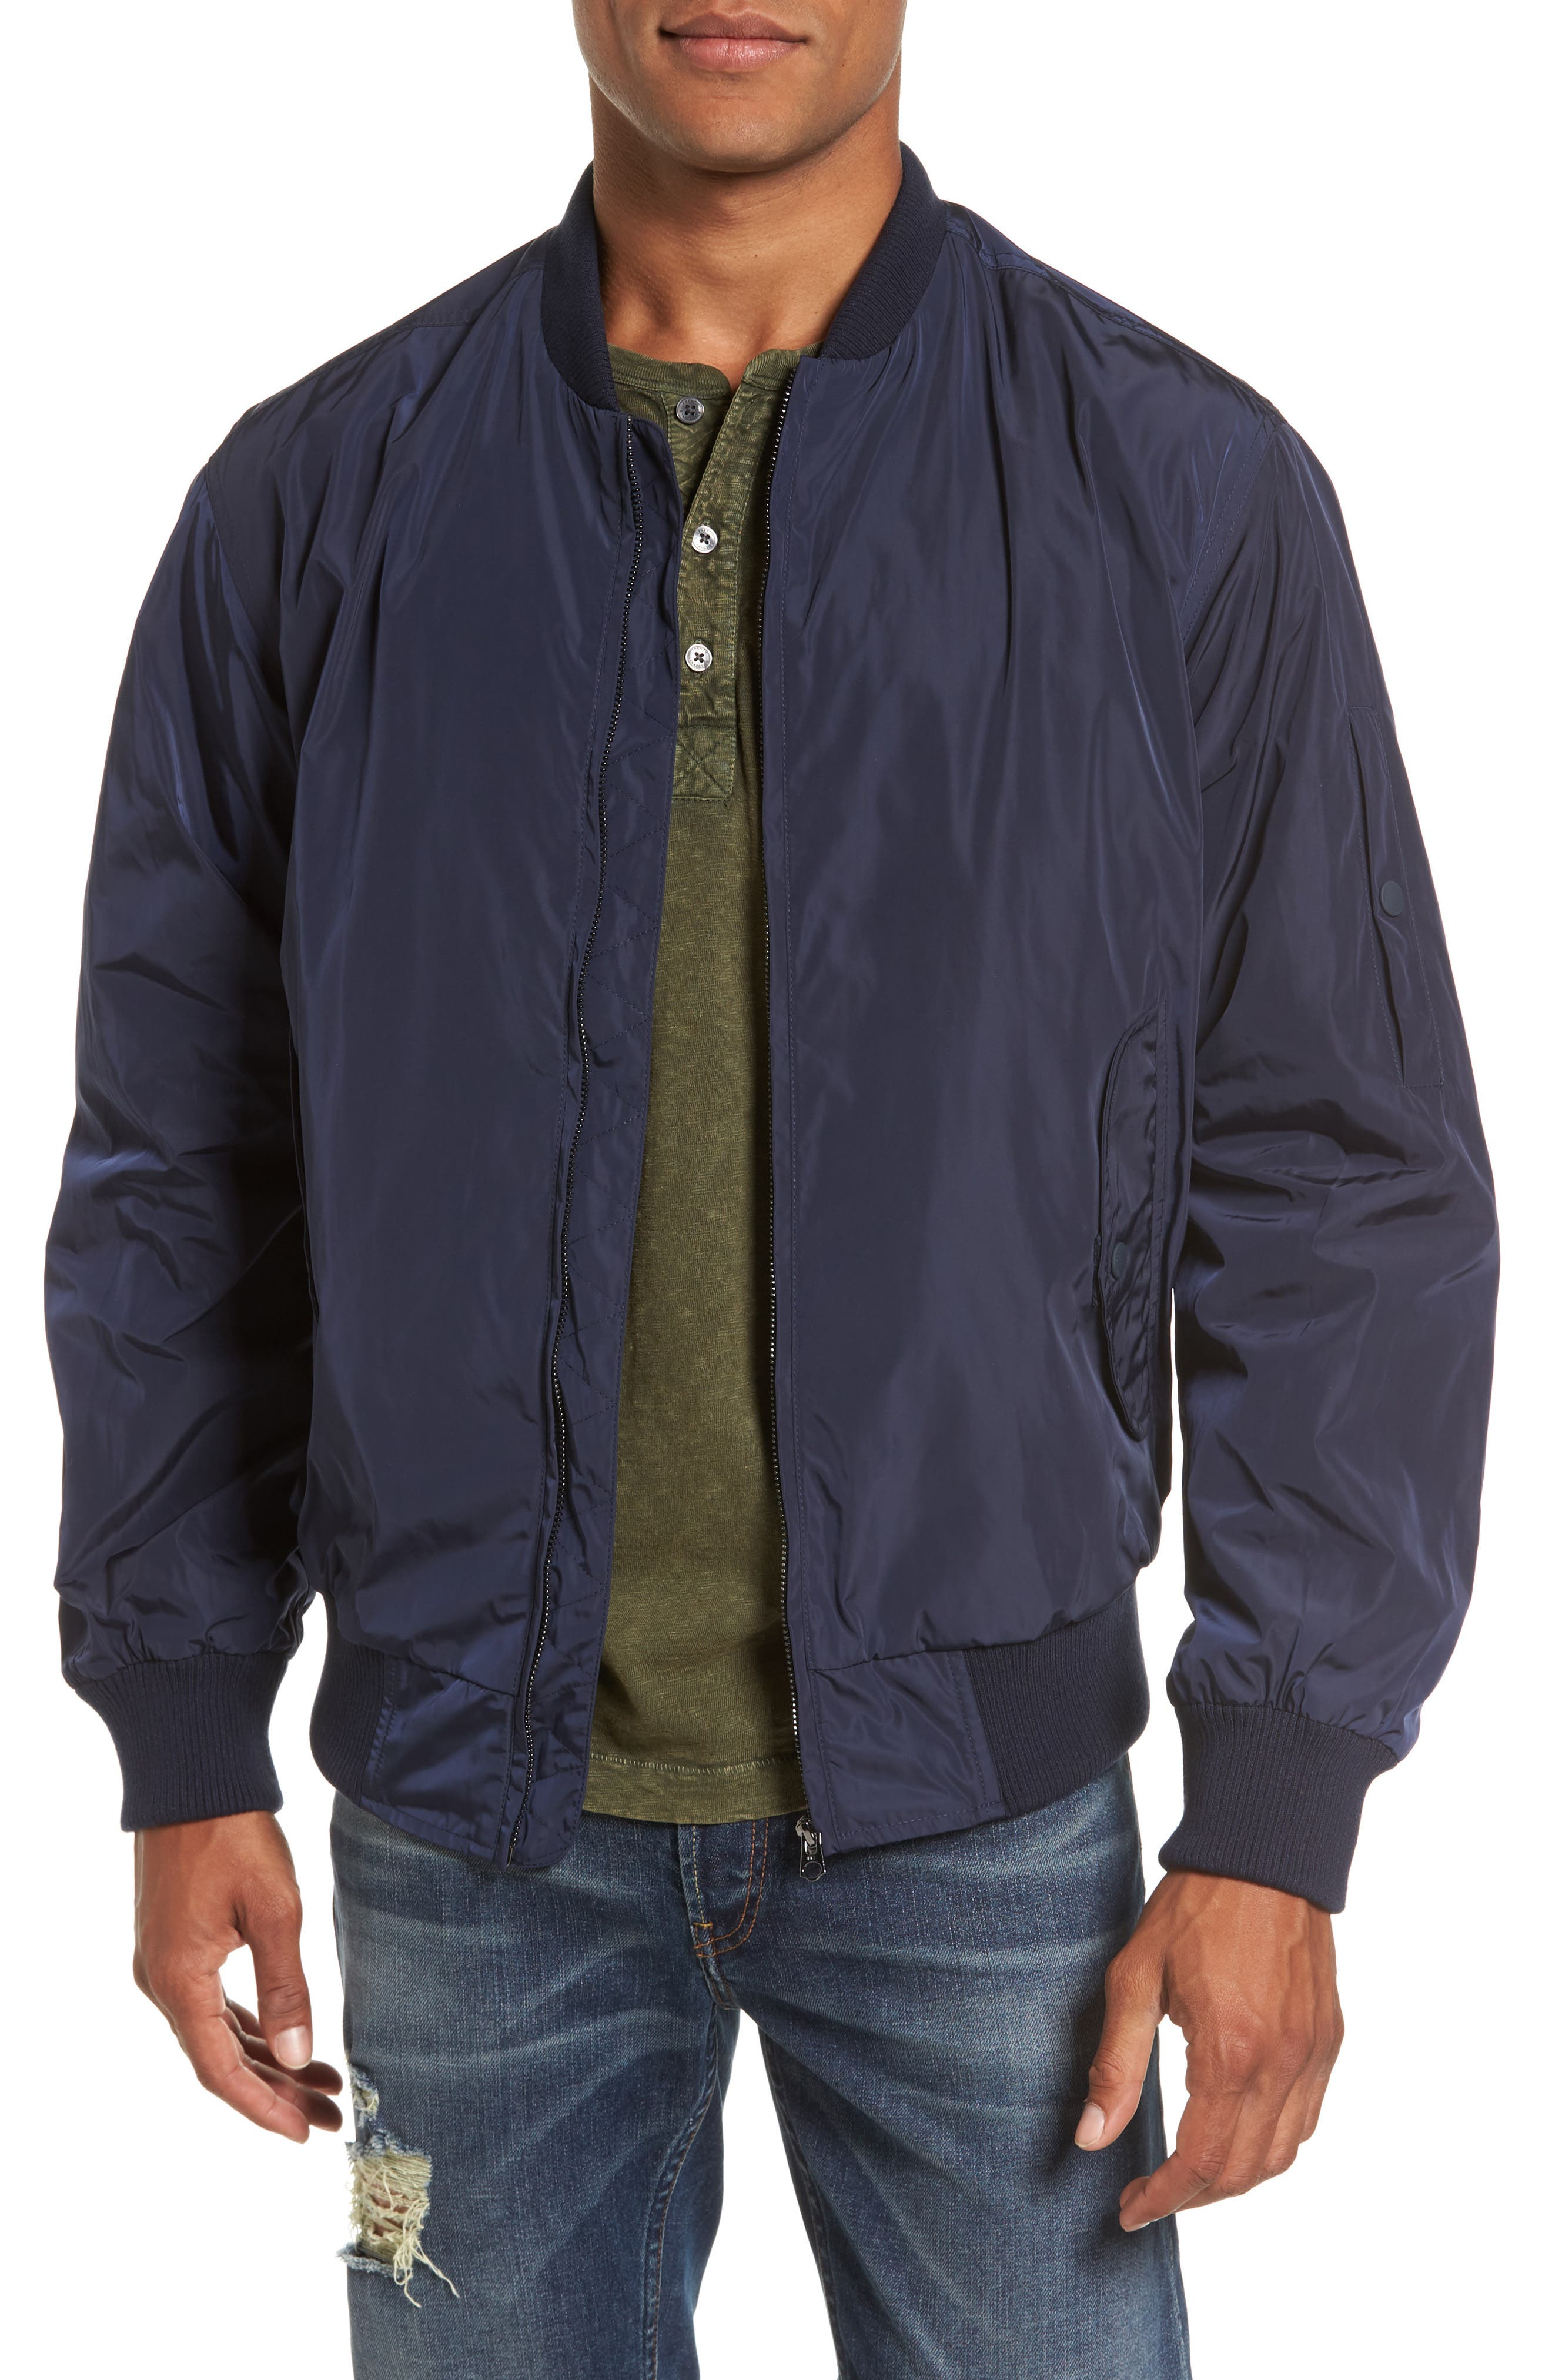 Alternate Image 1 Selected - French Connection Boulevard Regular Fit Light Bomber Jacket